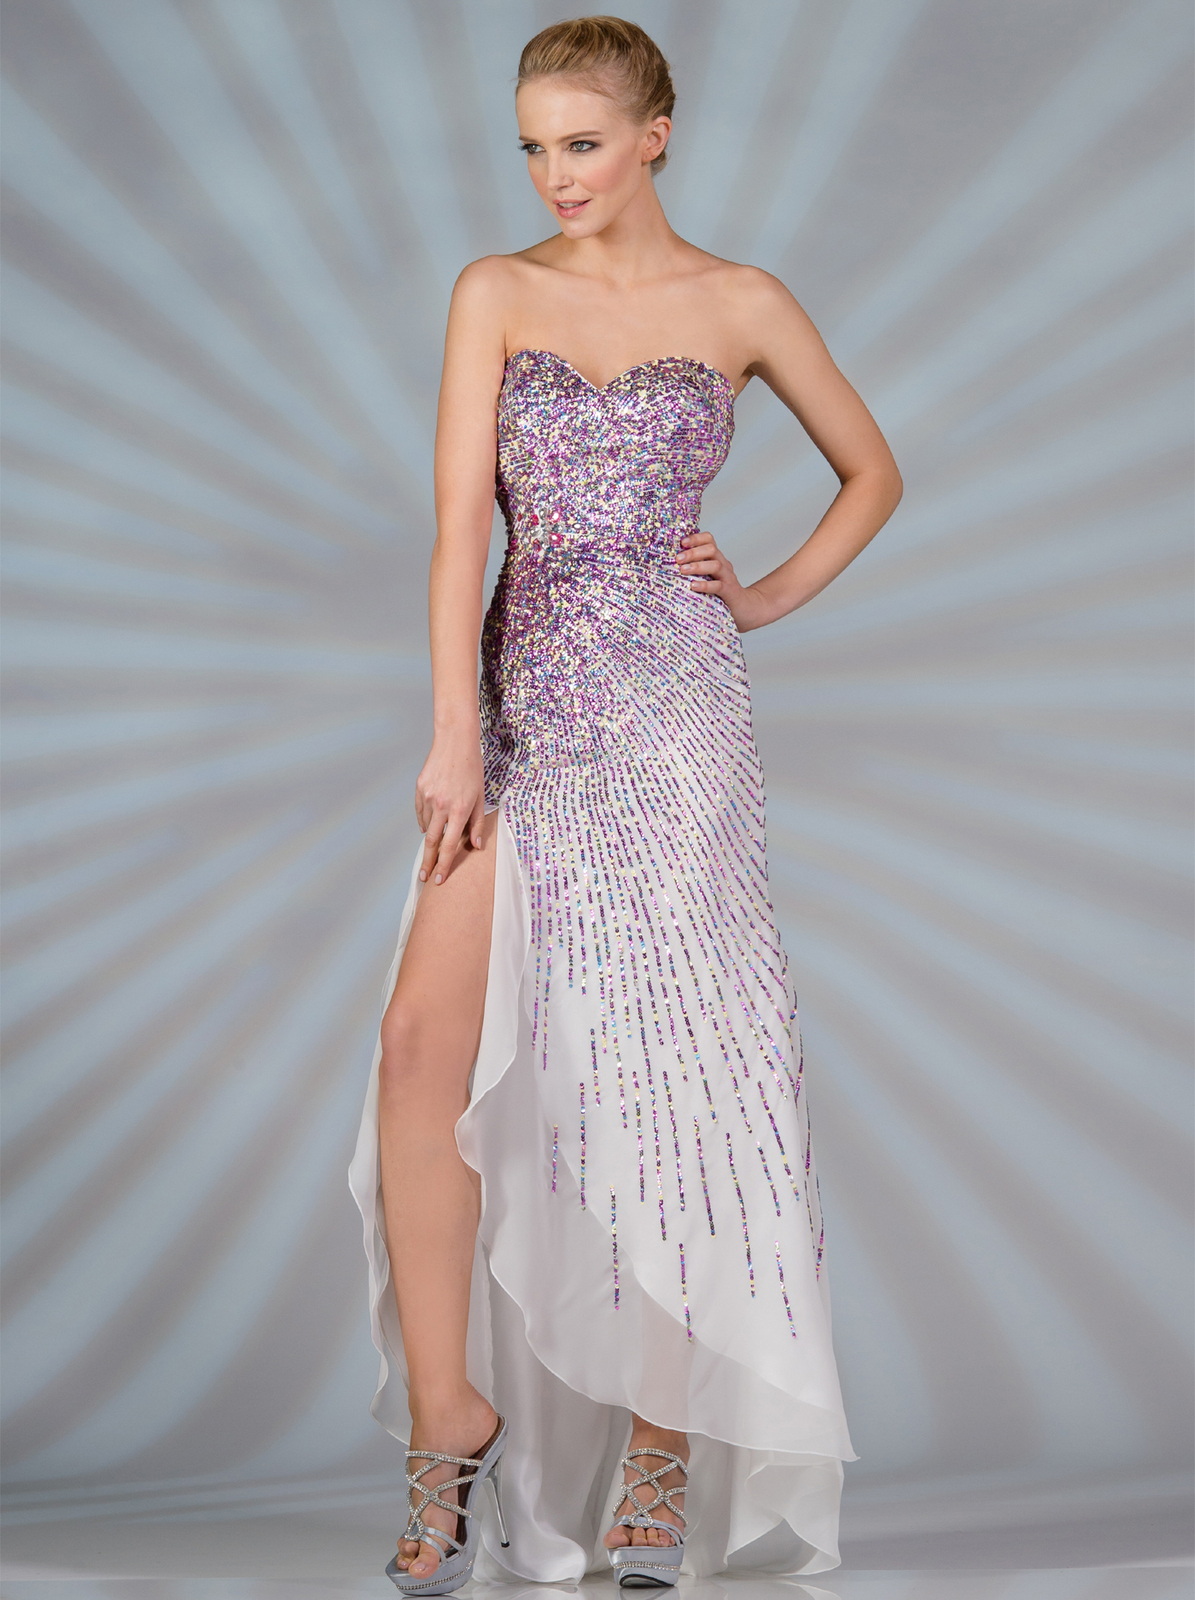 Sequin Pattern Prom Dress | Sung Boutique L.A.